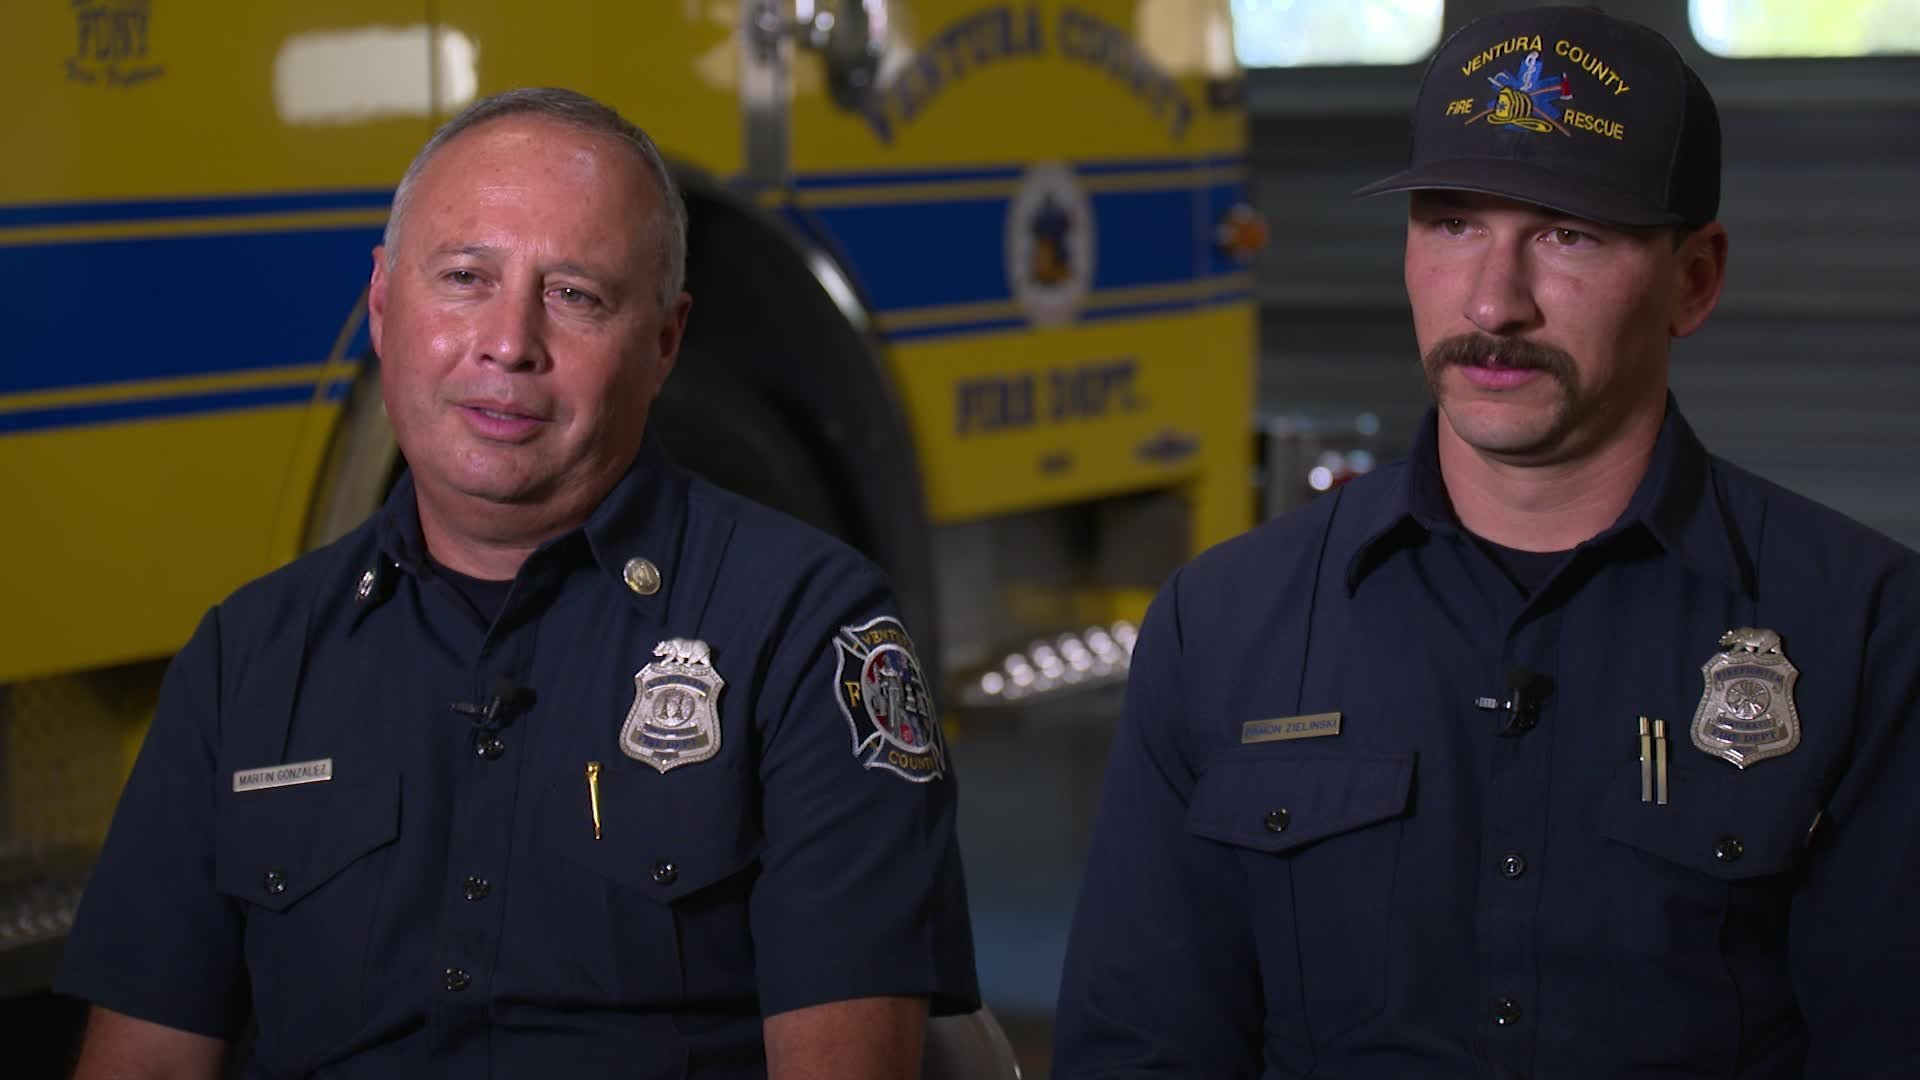 From a mass shooting to a major wildfire, two California firefighters recount a harrowing 24 hours in an interview with CNN on June 13, 2019. (Credit: CNN)